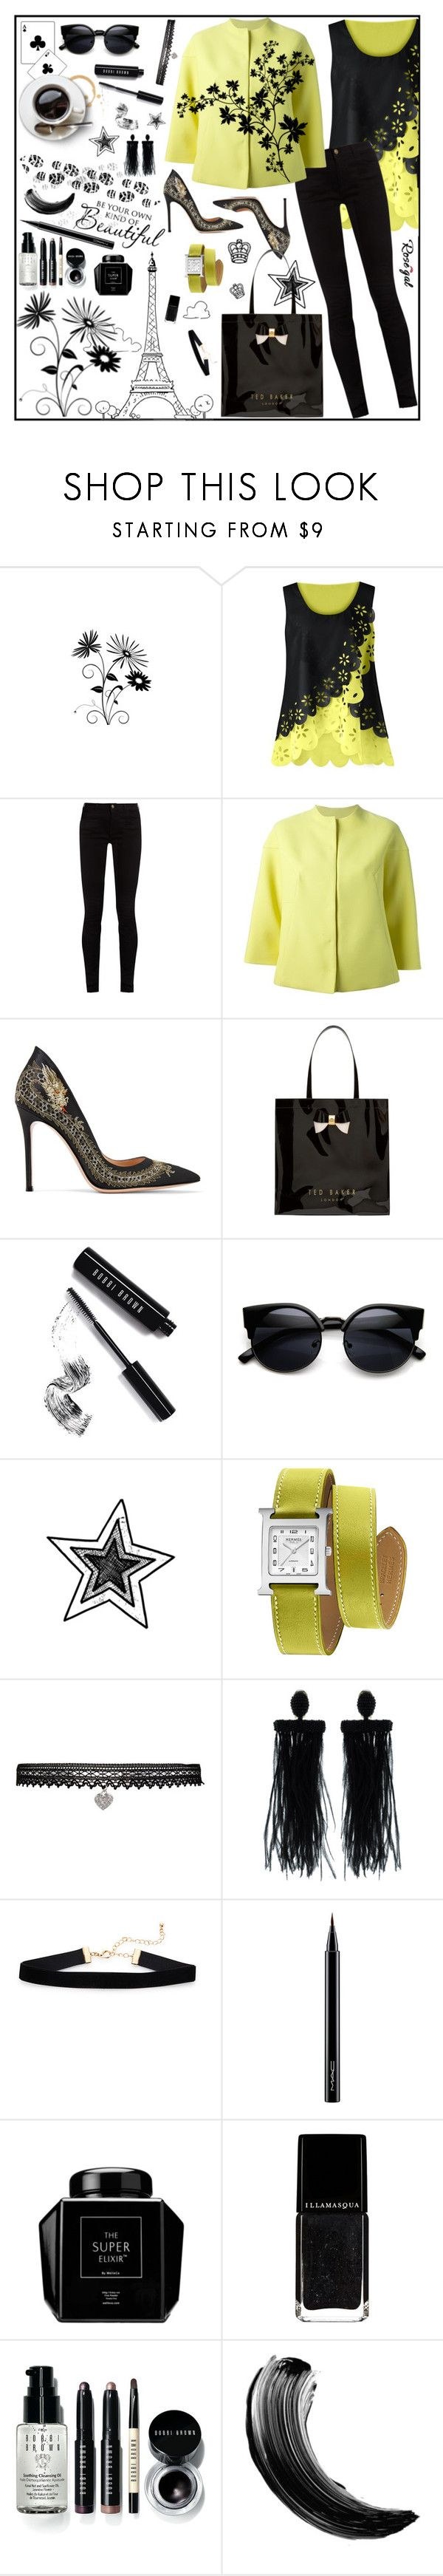 """Be your own kind of beautiful"" by dingonunnu ❤ liked on Polyvore featuring Gucci, Valentino, Gianvito Rossi, Ted Baker, Bobbi Brown Cosmetics, Hermès, Betsey Johnson, Oscar de la Renta, MAC Cosmetics and Maybelline"